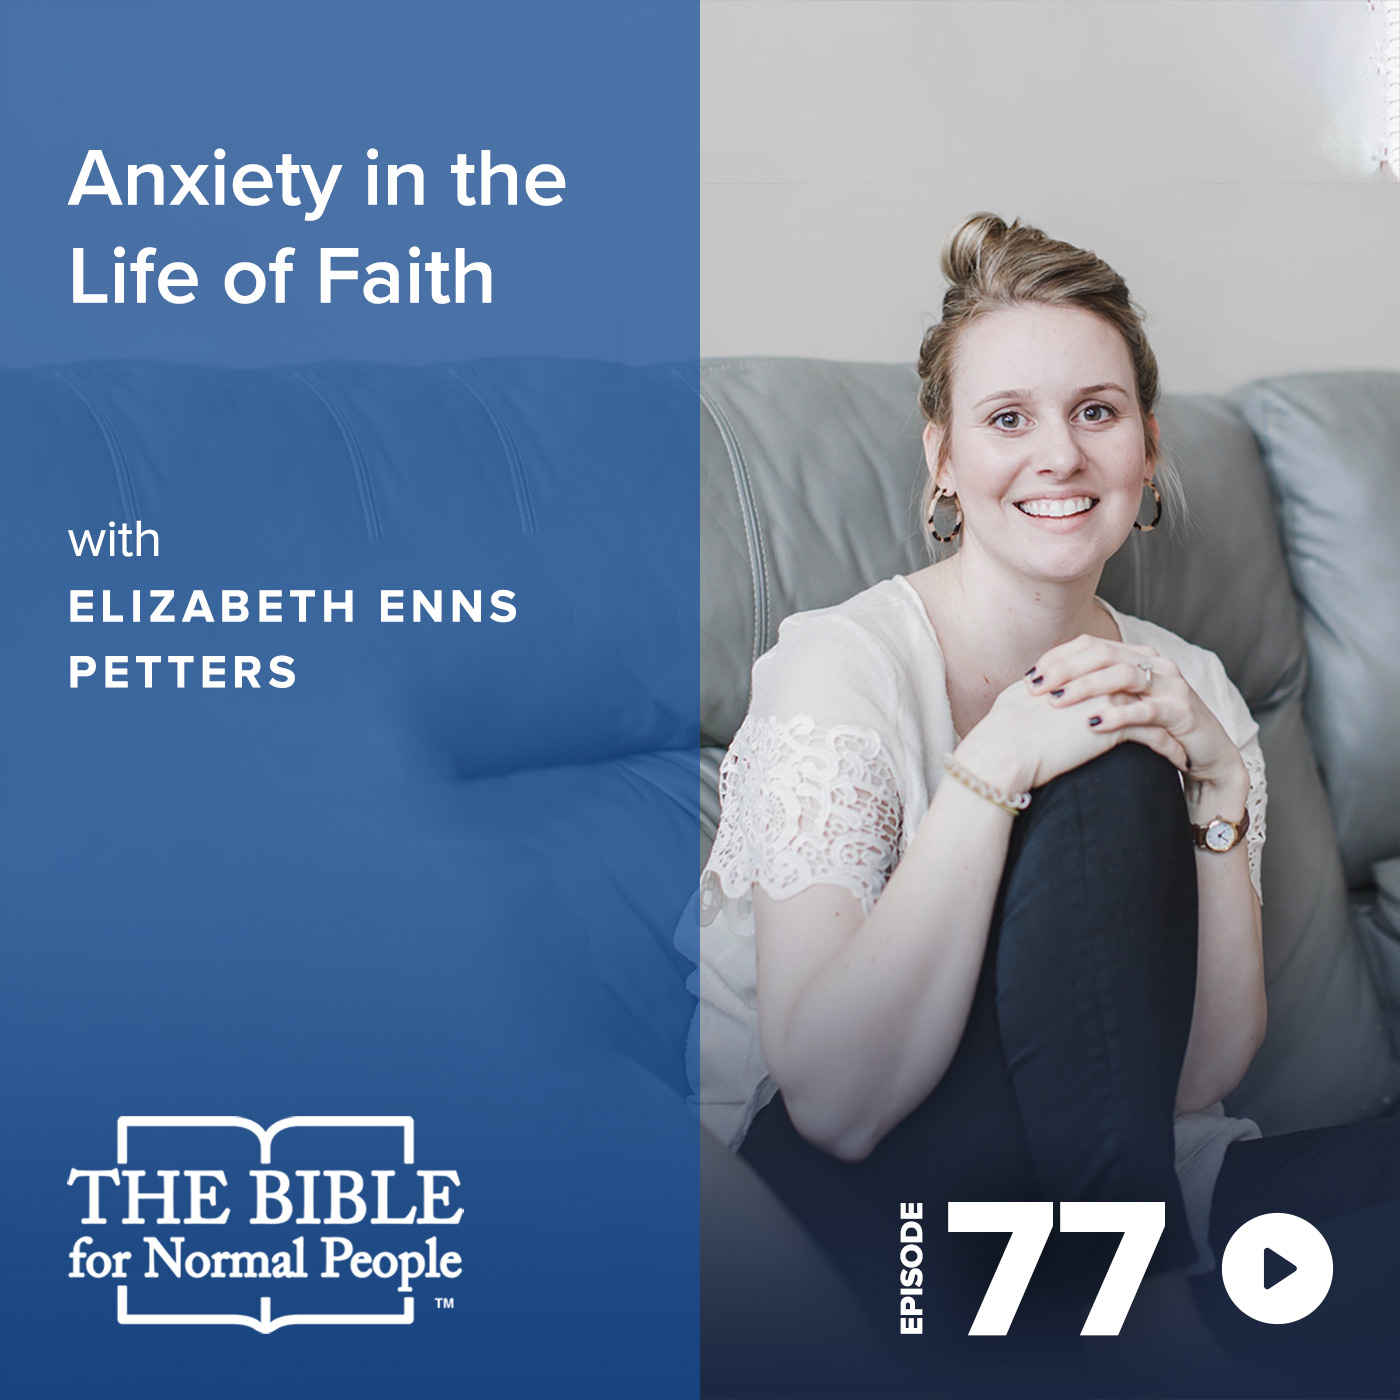 Episode 77: Elizabeth Enns Petters - Anxiety in the Life of Faith